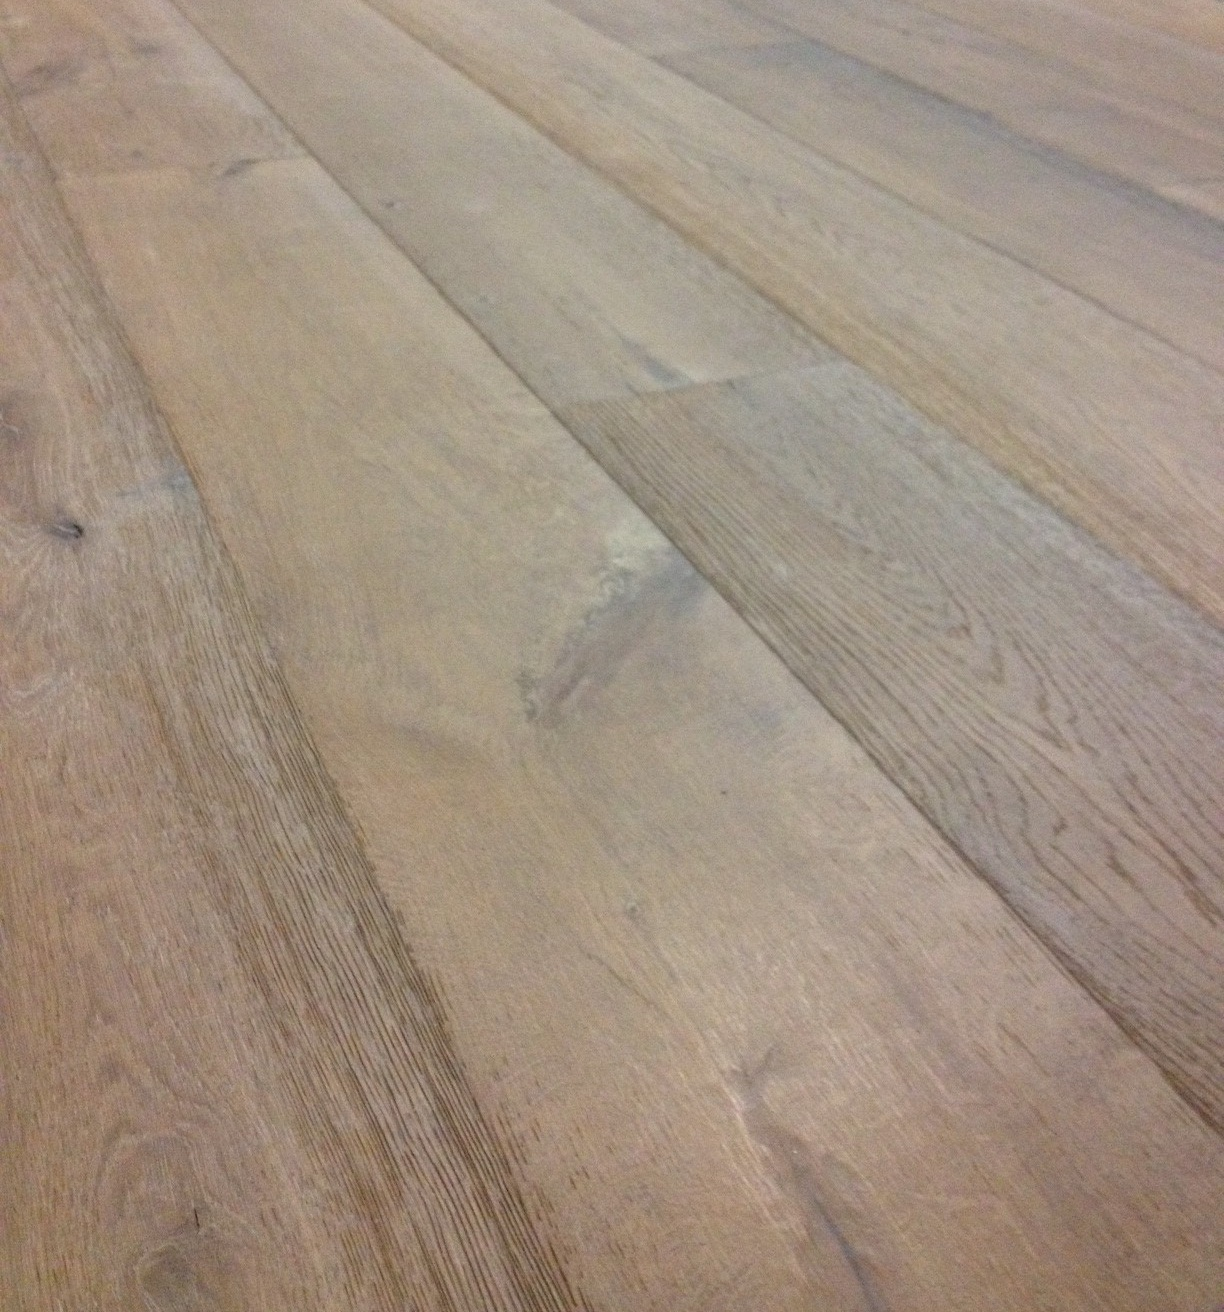 Wood Floor Colors Hardwood Floors And Wood Flooring: Current Trends In The Wood Flooring Industry.